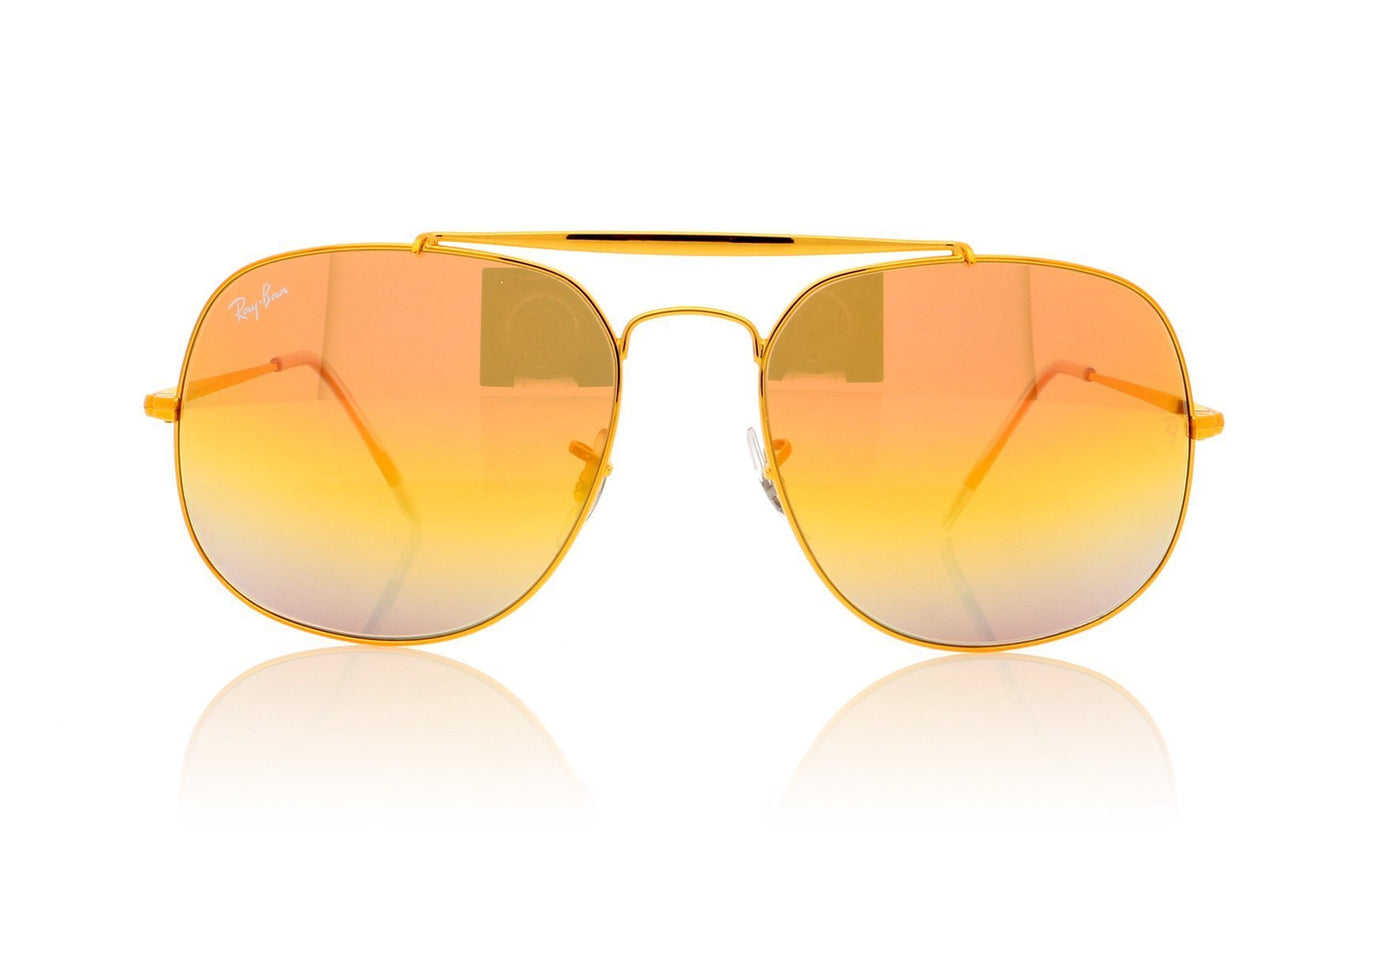 872222abd1 Ray-Ban General 0RB3561 001 Gold Sunglasses at OCO